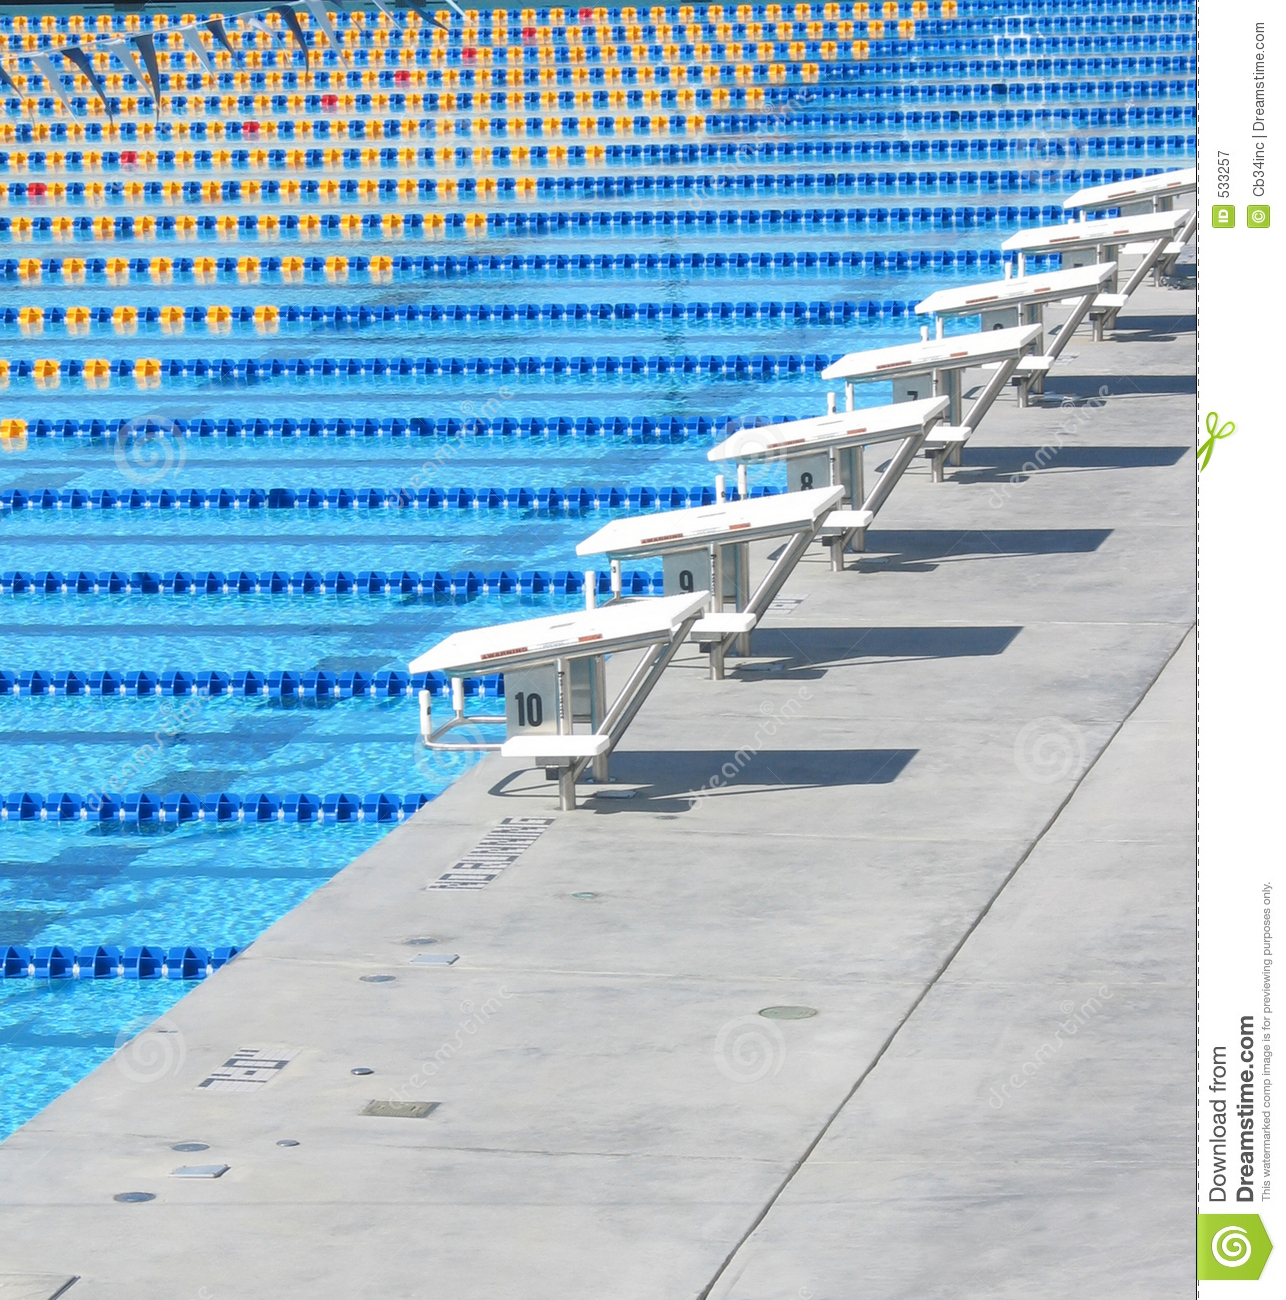 Olympic Size Swimming Pools With Mansions: Olympic Sized Swimming Pool Stock Image